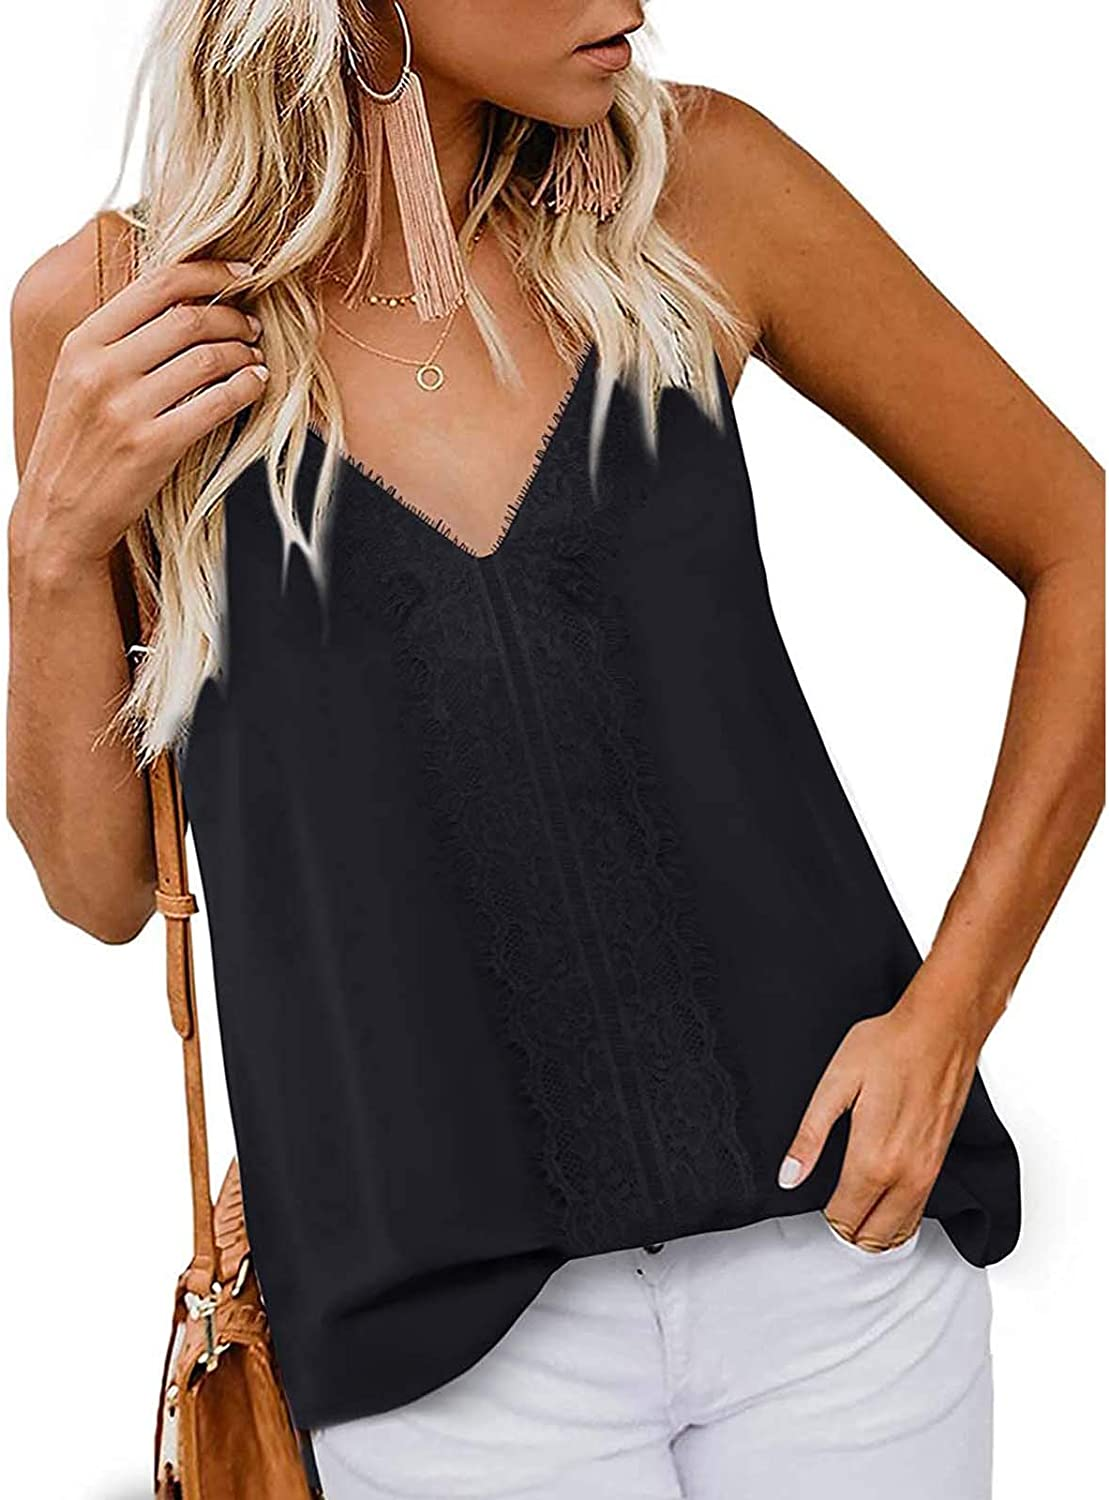 PLOIUUEW Sexy Women's Vest Comfy Solid Color V-Neck Splicing Ruffles Short Sleeve Tunics Fashion